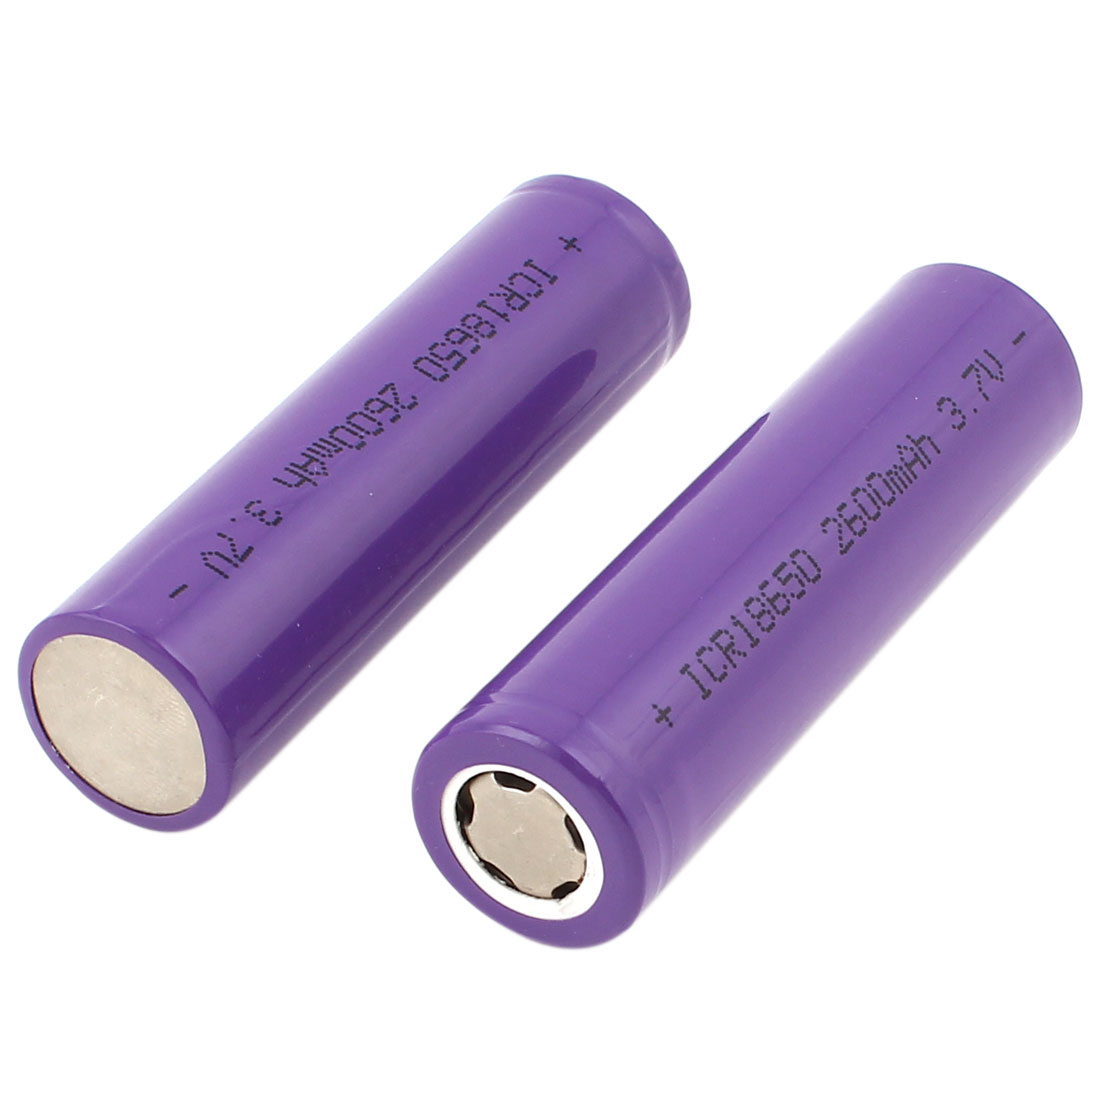 Flashlight 3.7V 2600mAh 18650 Rechargeable Li-ion Lithium Battery 2 Pcs